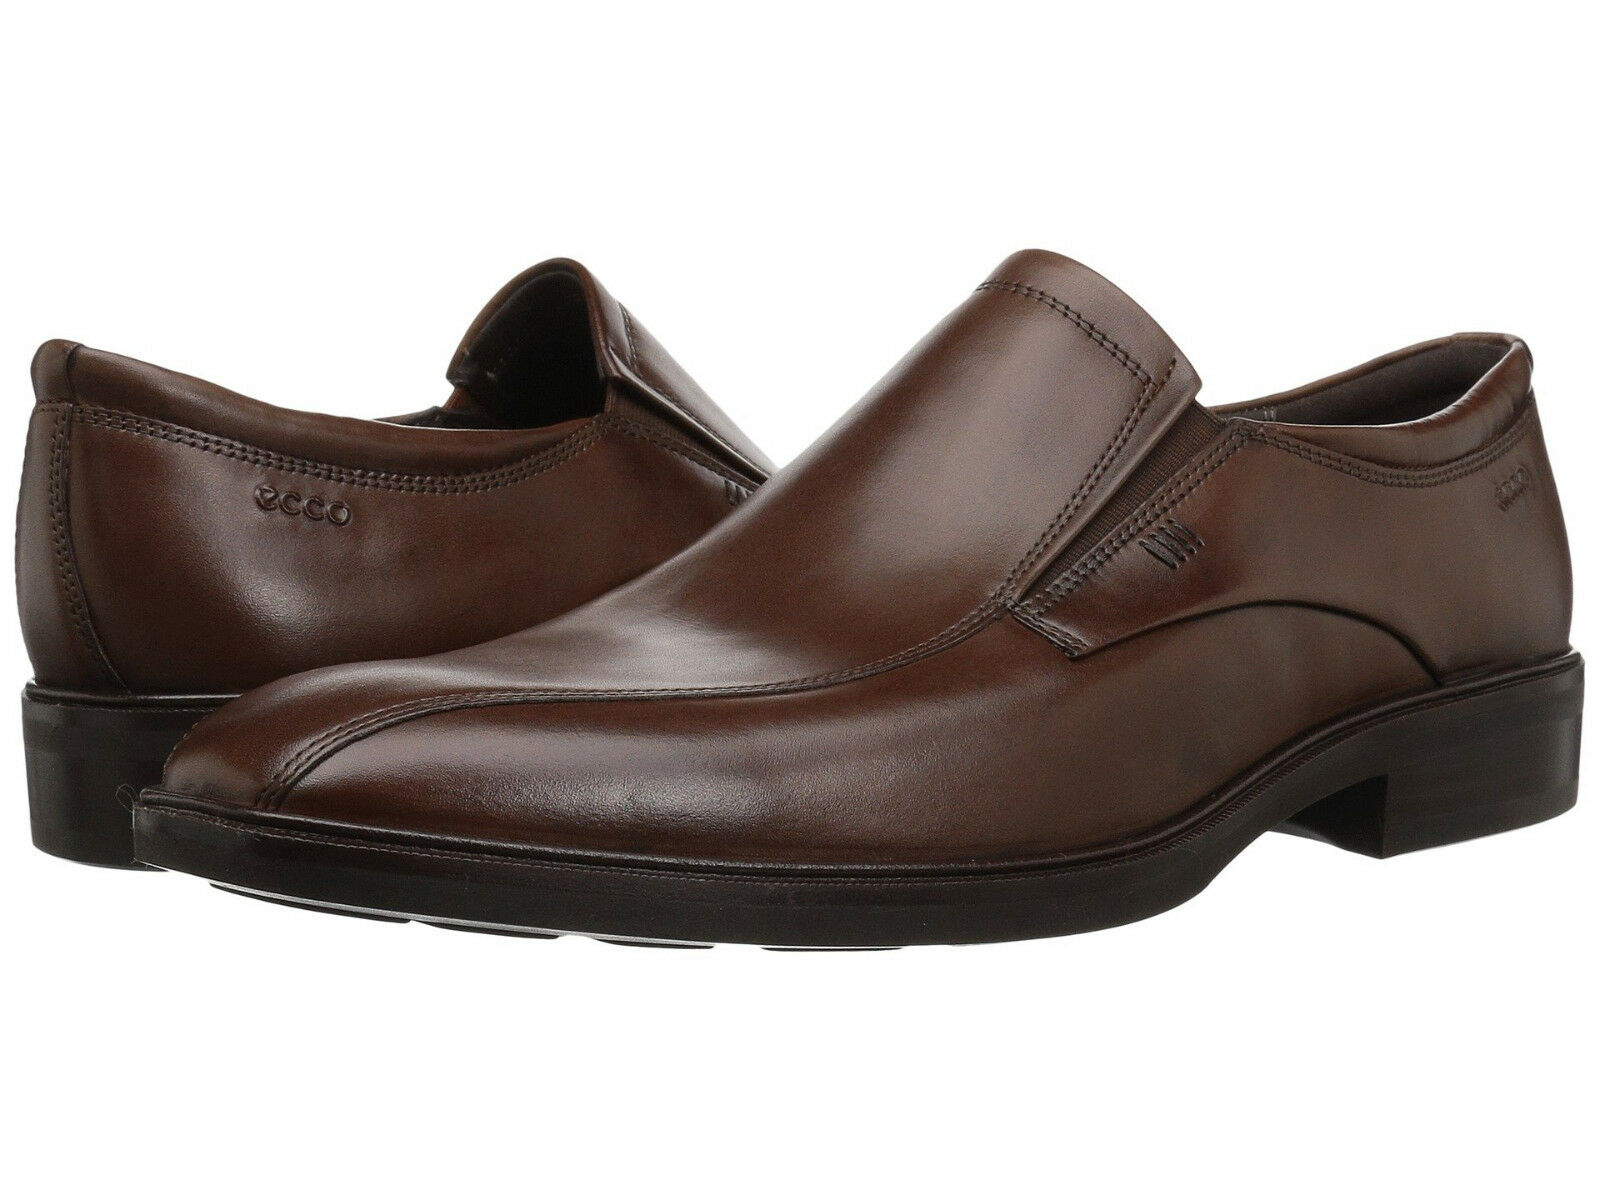 Ecco Men's Illinois US 13 M   Brown Leather Slip-Ons Loafers shoes